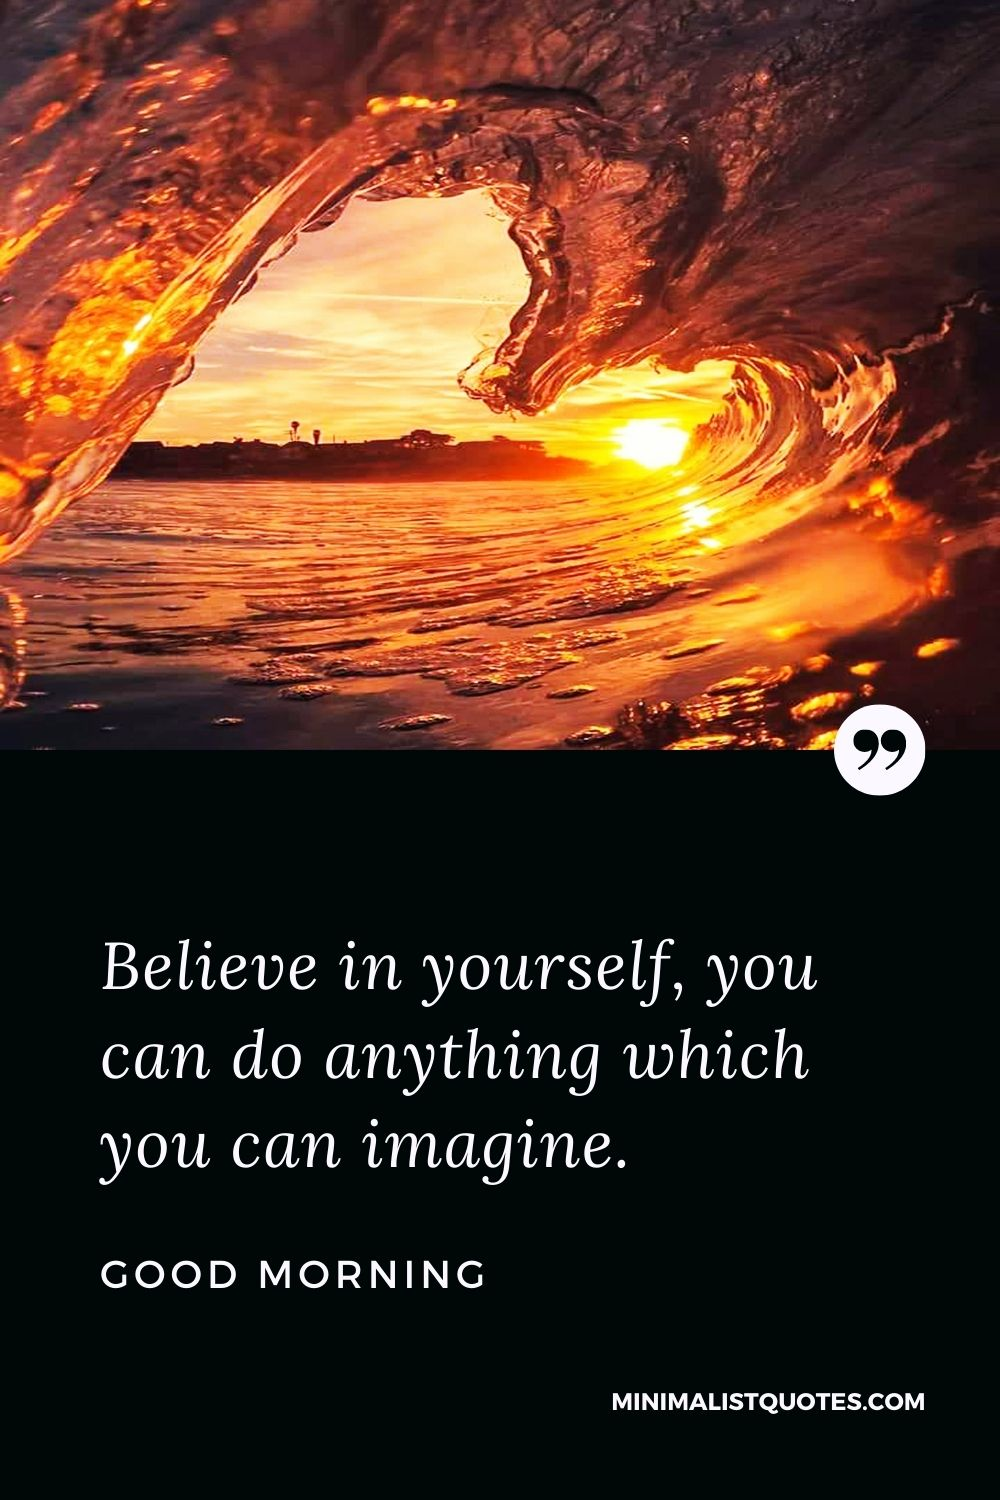 Good Morning Wish & Message With Image: Believe in yourself, you can do anything which you can imagine.